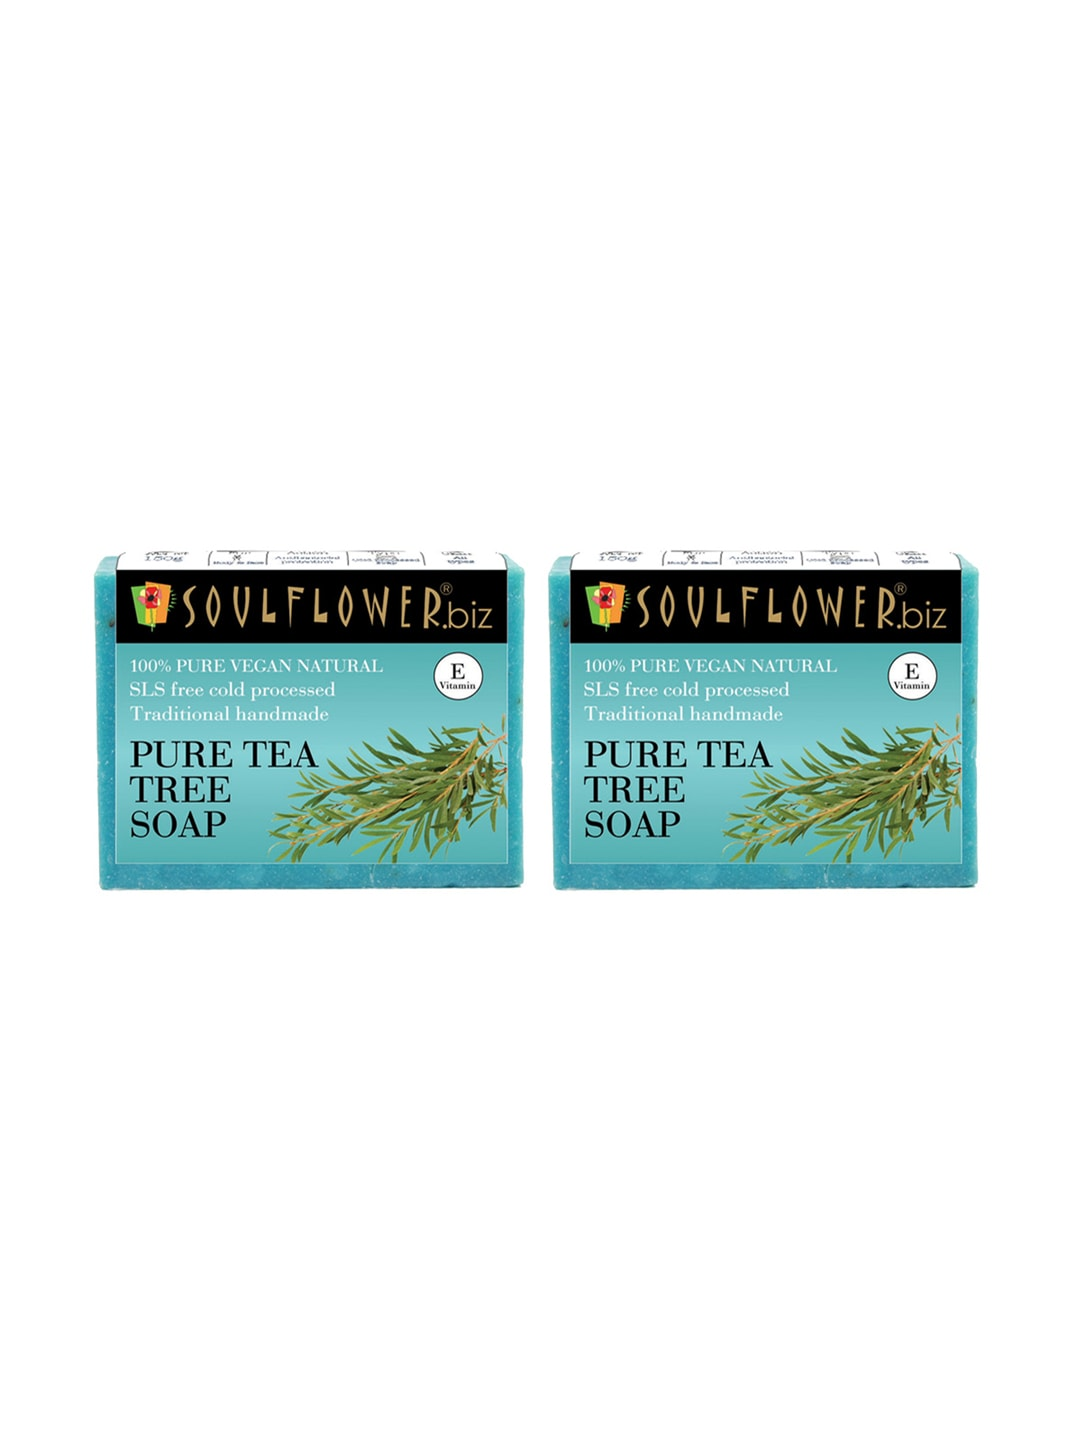 Soulflower Unisex Pack of 2 Pure Tea Tree Soaps image